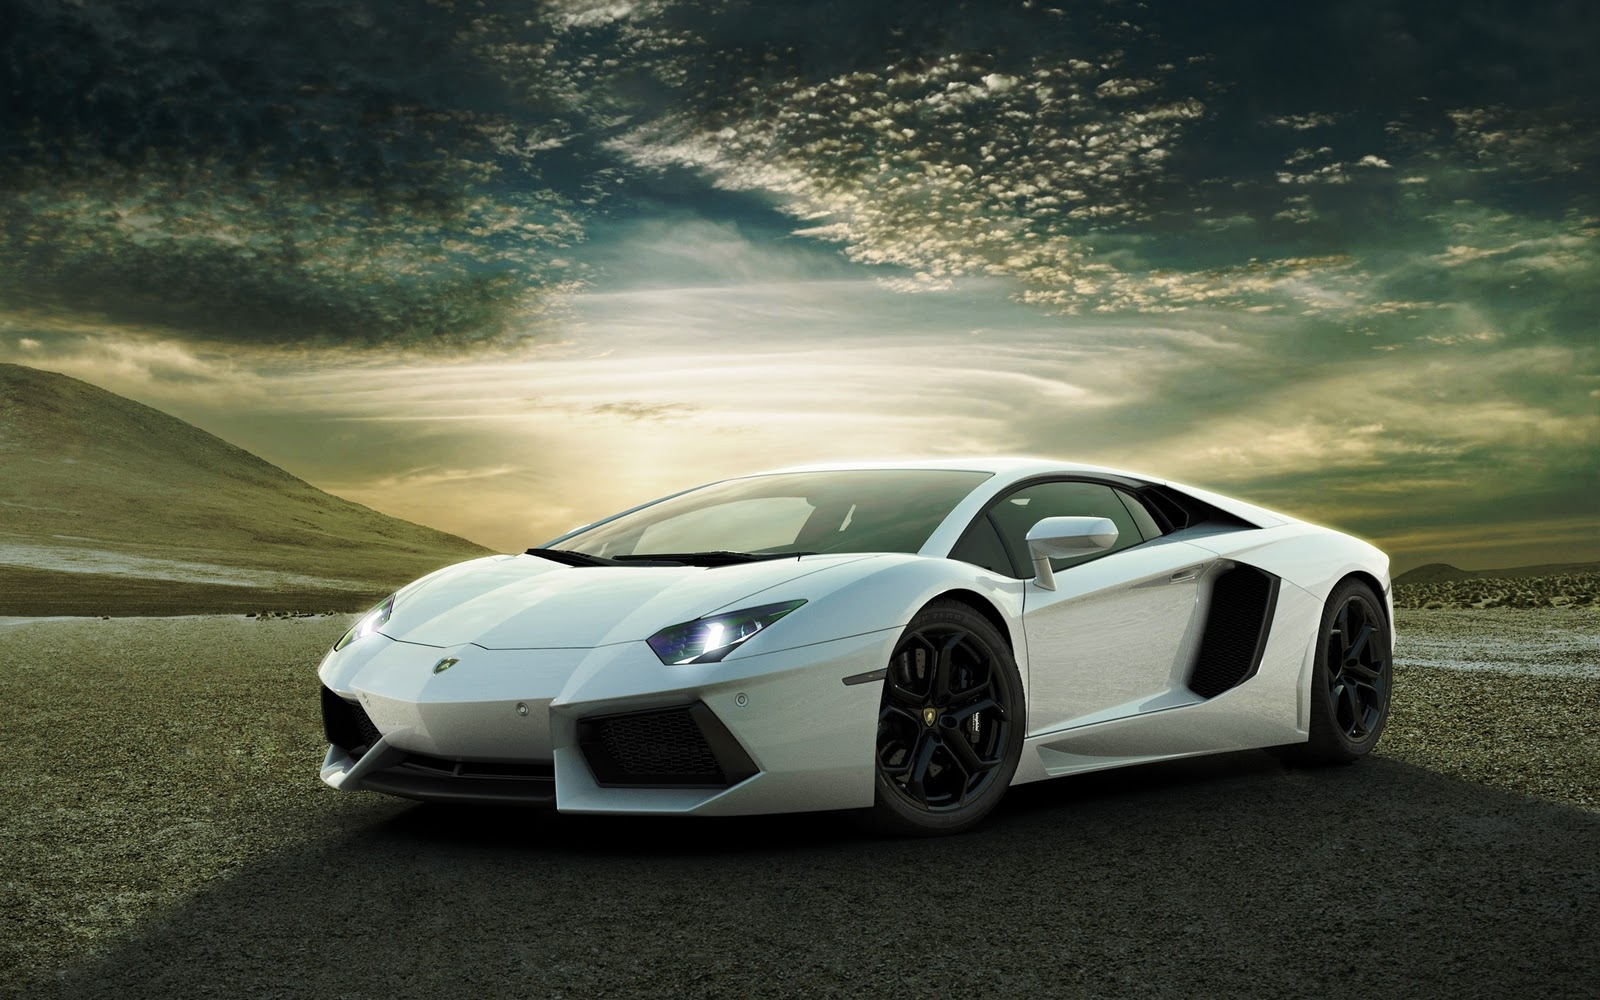 Charmant HD Car Wallpapers Is The No:1 Source Of Car Wallpapers.